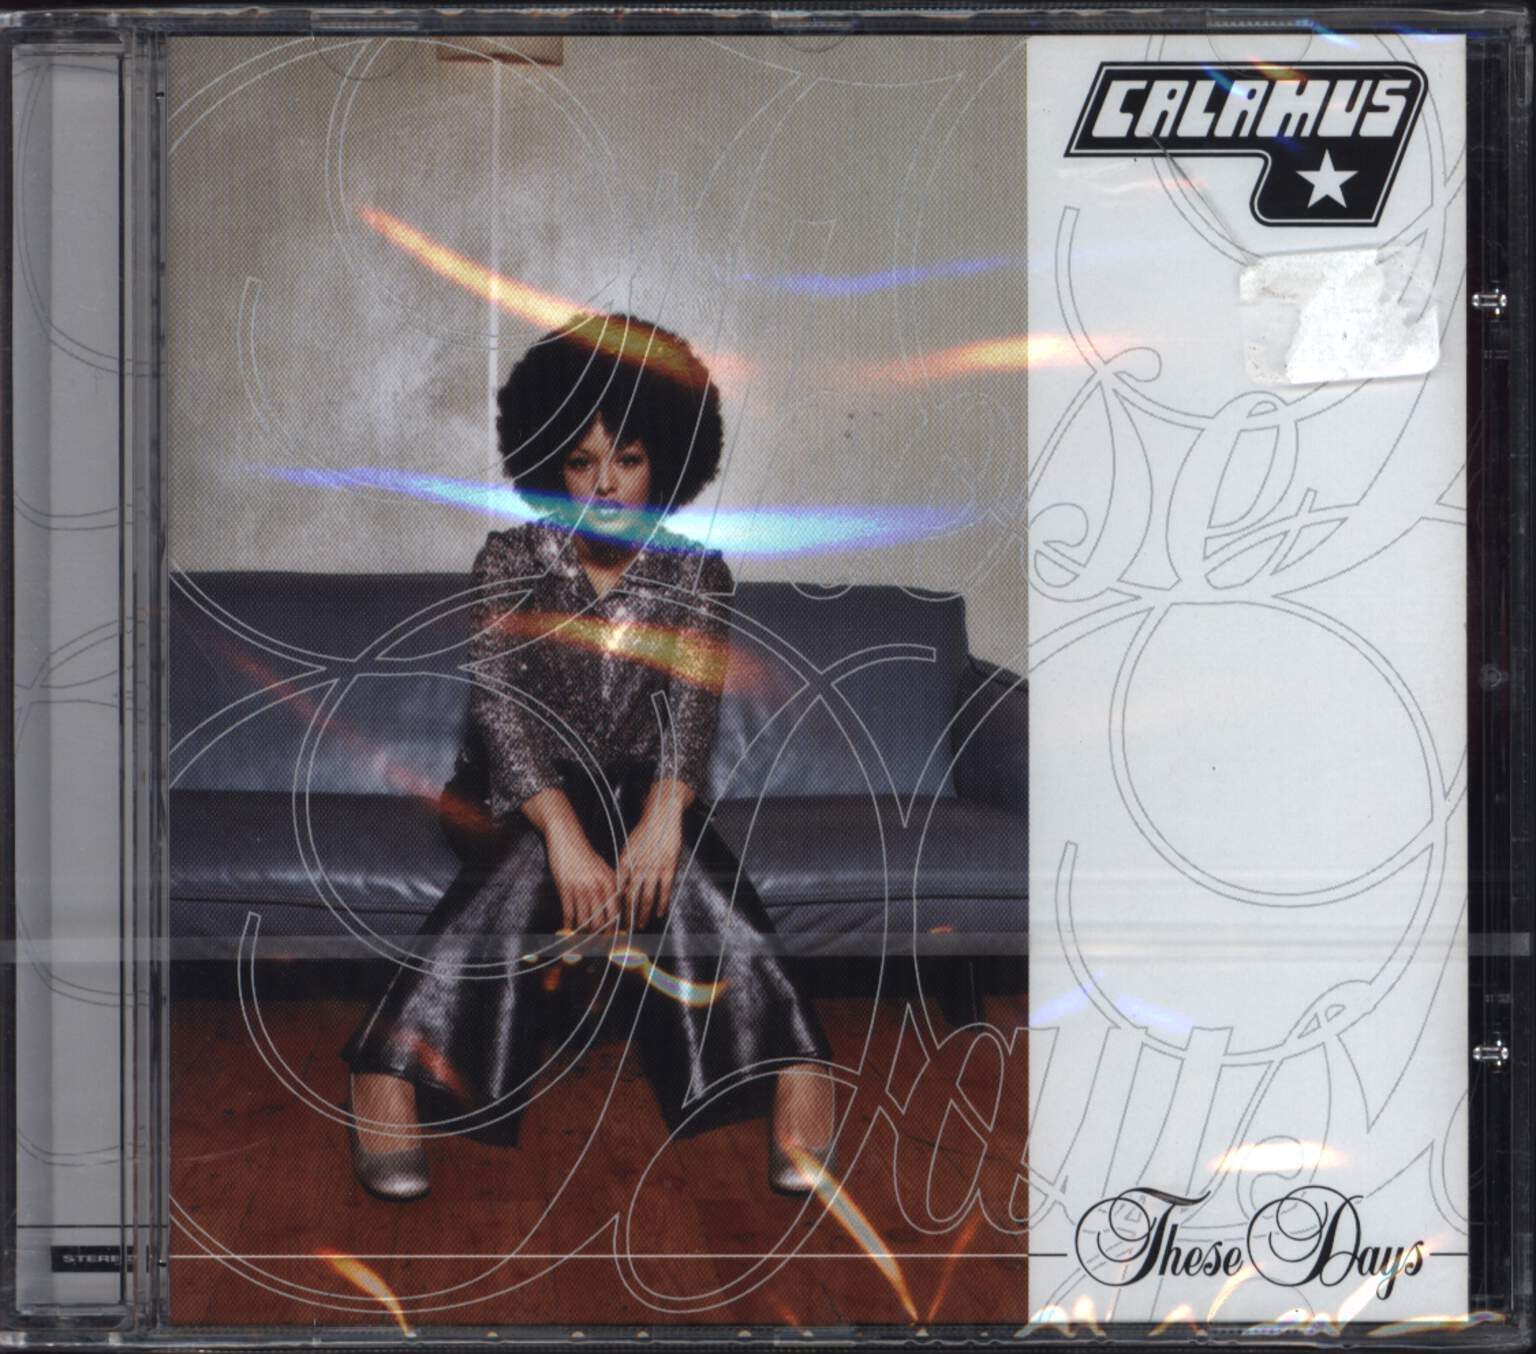 Calamus: These Days, CD